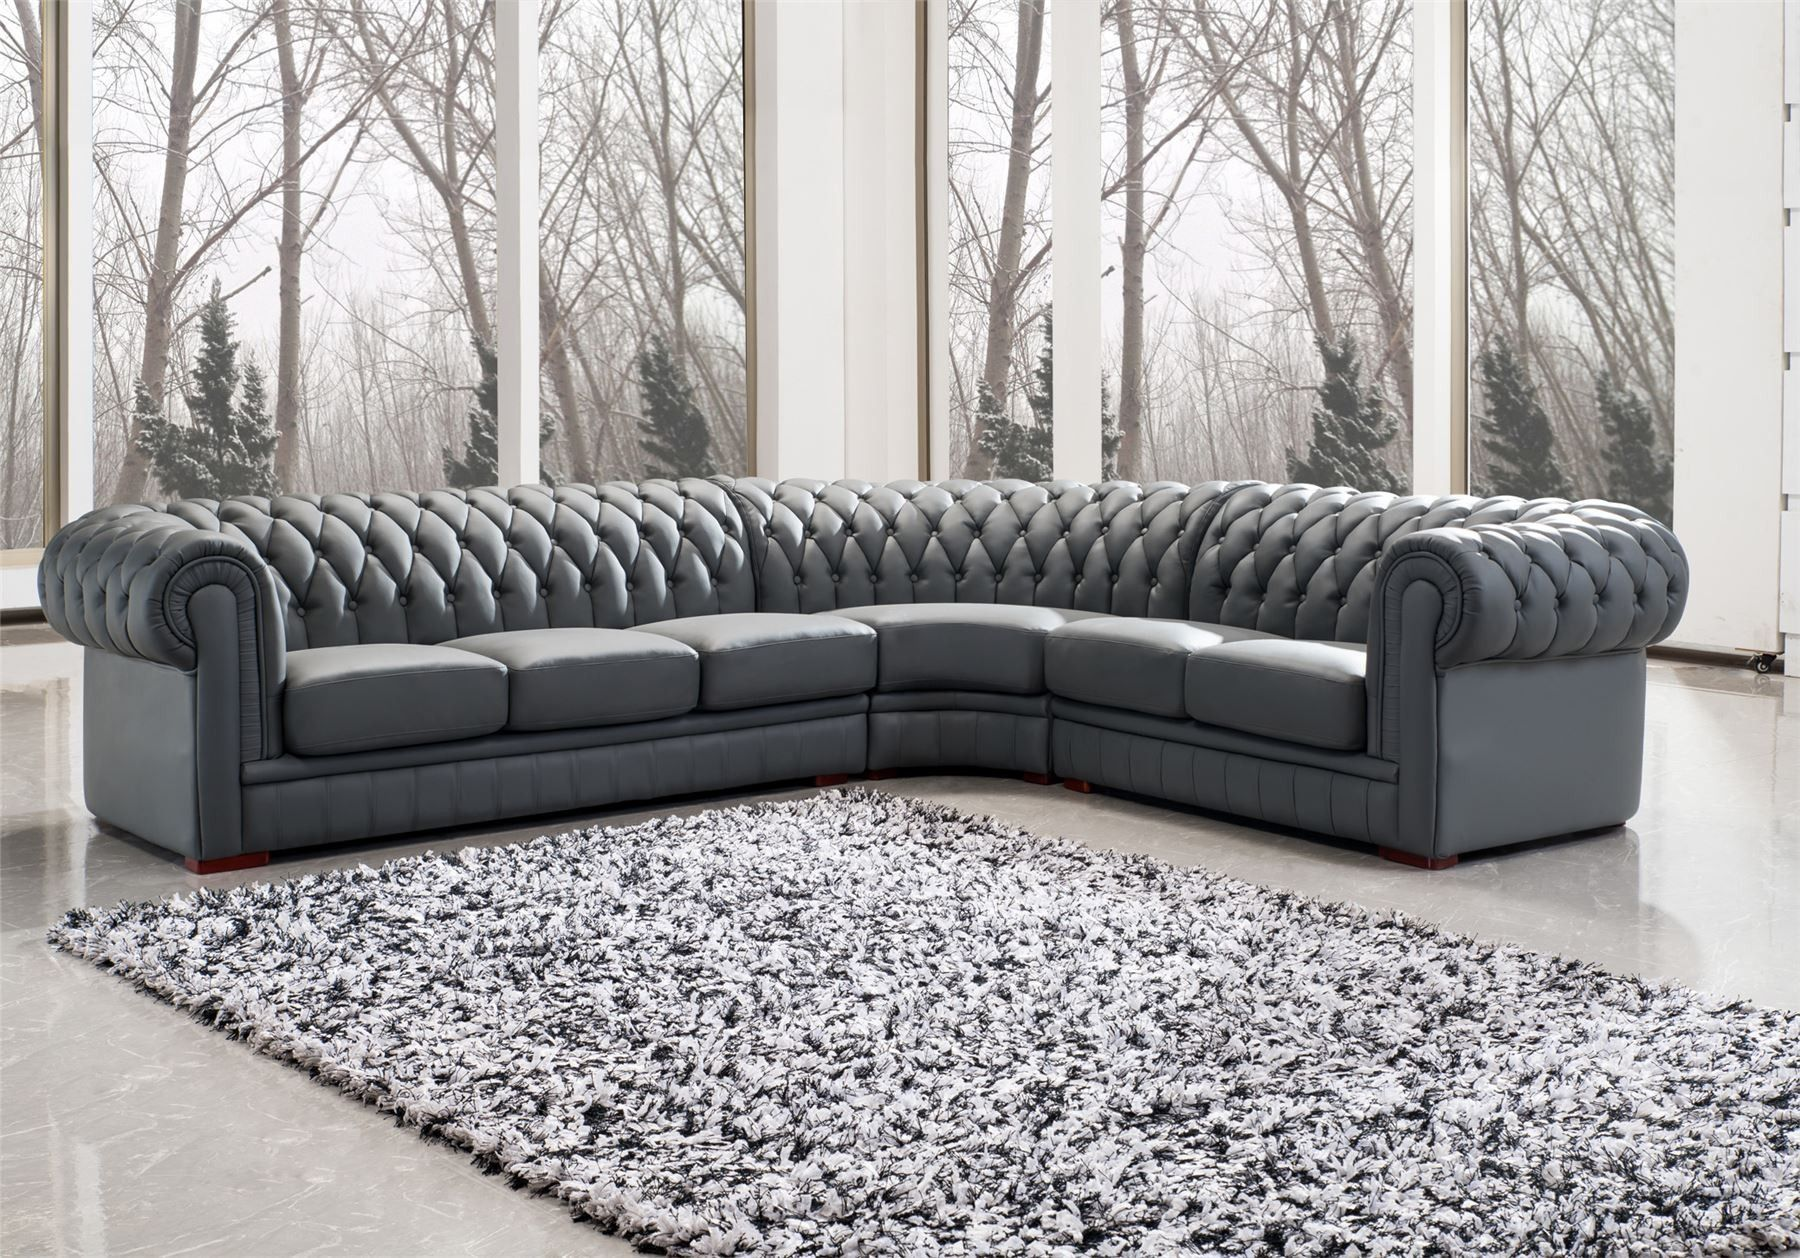 What To Know Before Getting A Wonderful Corner Chesterfield Sofa Today Leather Sectional Sofas Luxury Chesterfield Sofa Chesterfield Sofa Design